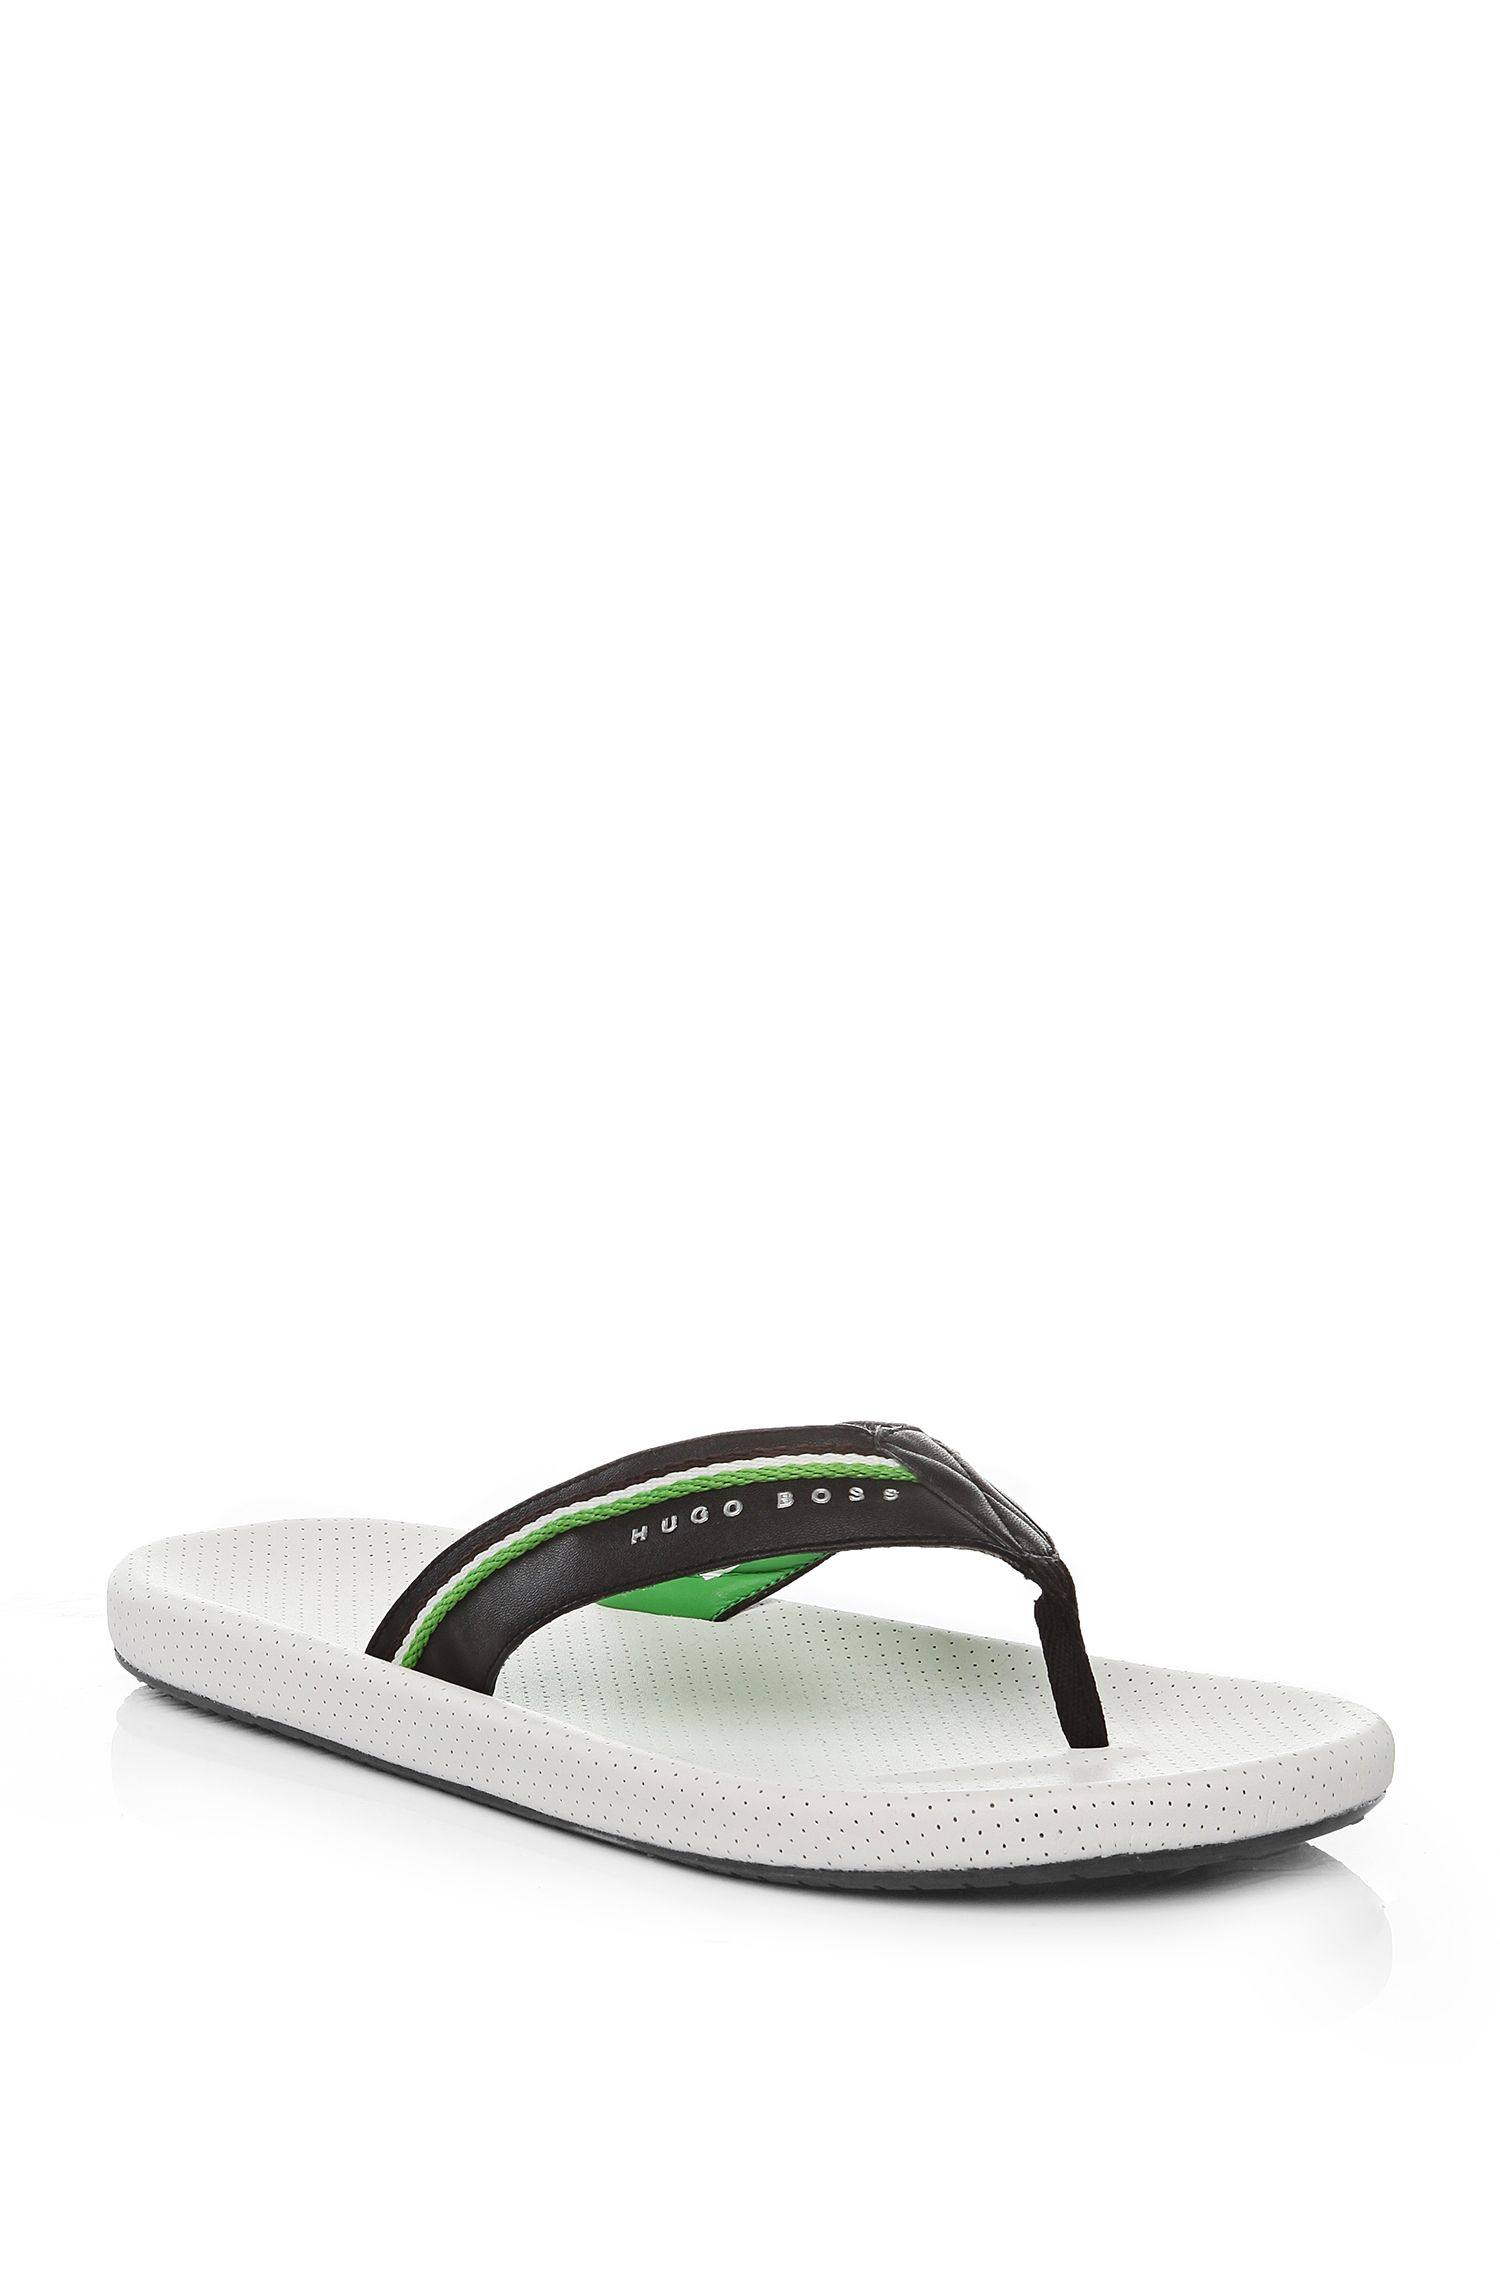 Textile Thong Sandal | Shoreline Fresh, White